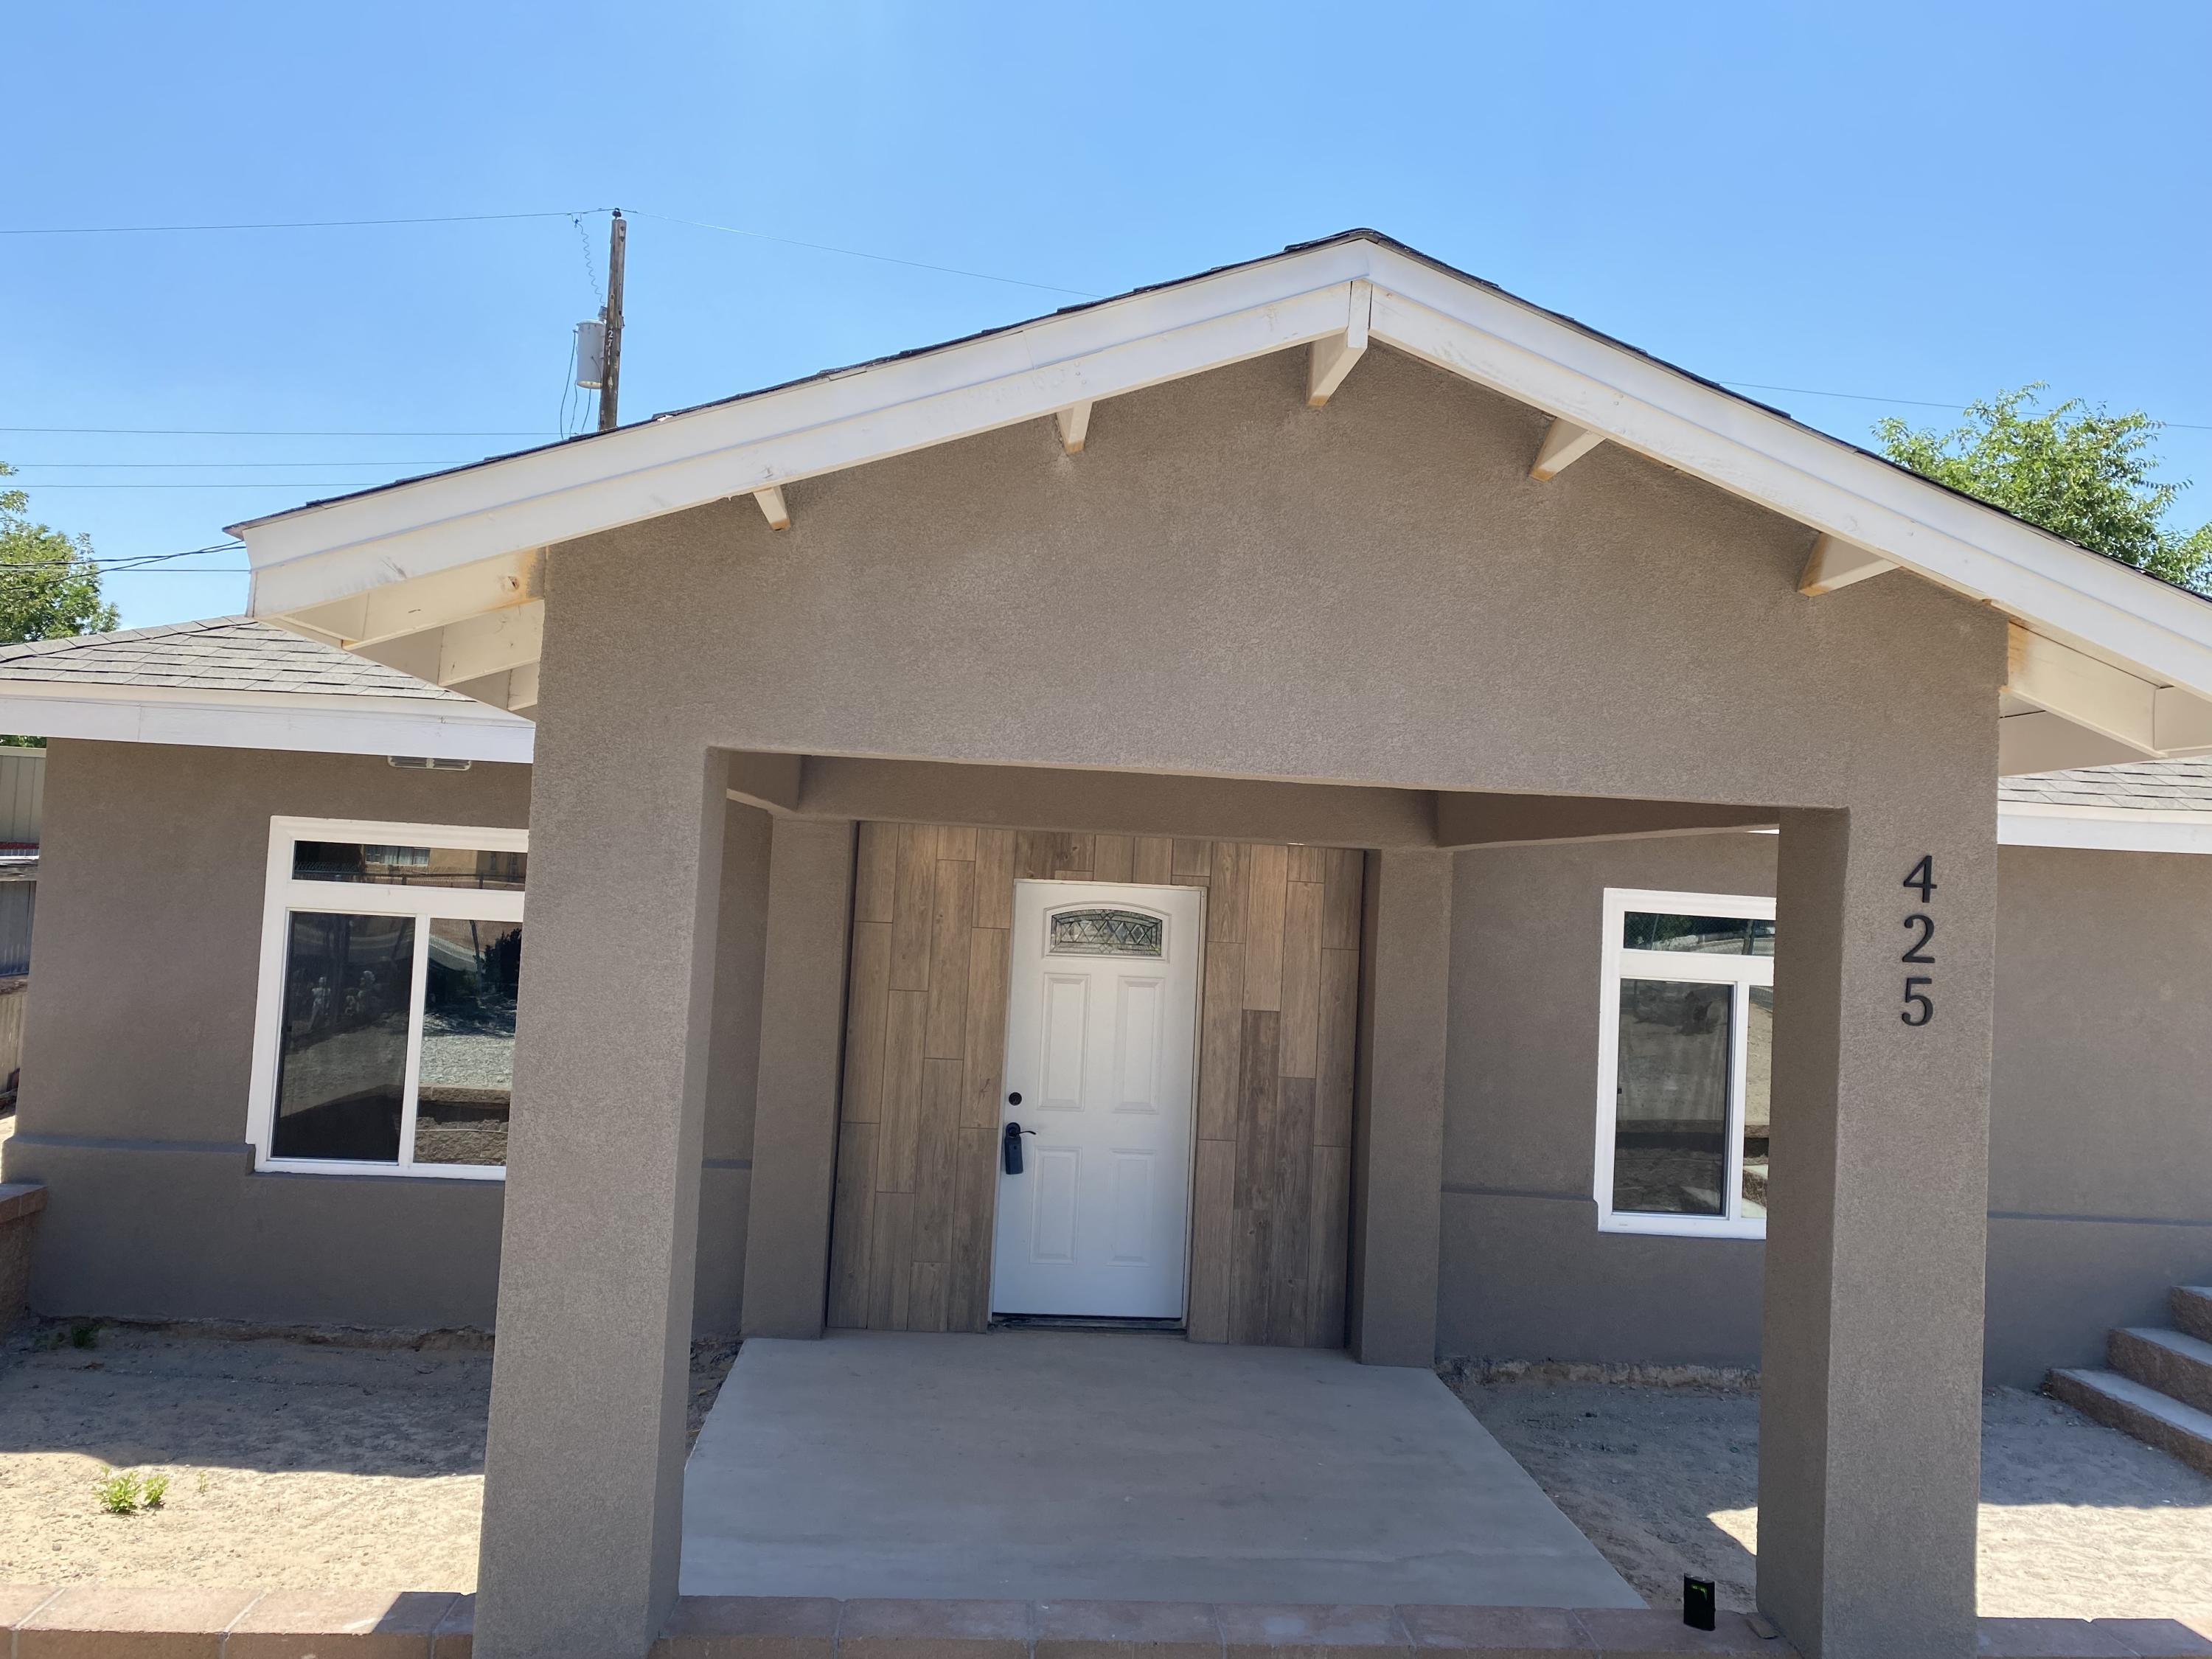 Completely remodeled. New roof, windows, kitchen cabinets, floors, light fixtures and more. Great floorplan on a large lot! A must see today!